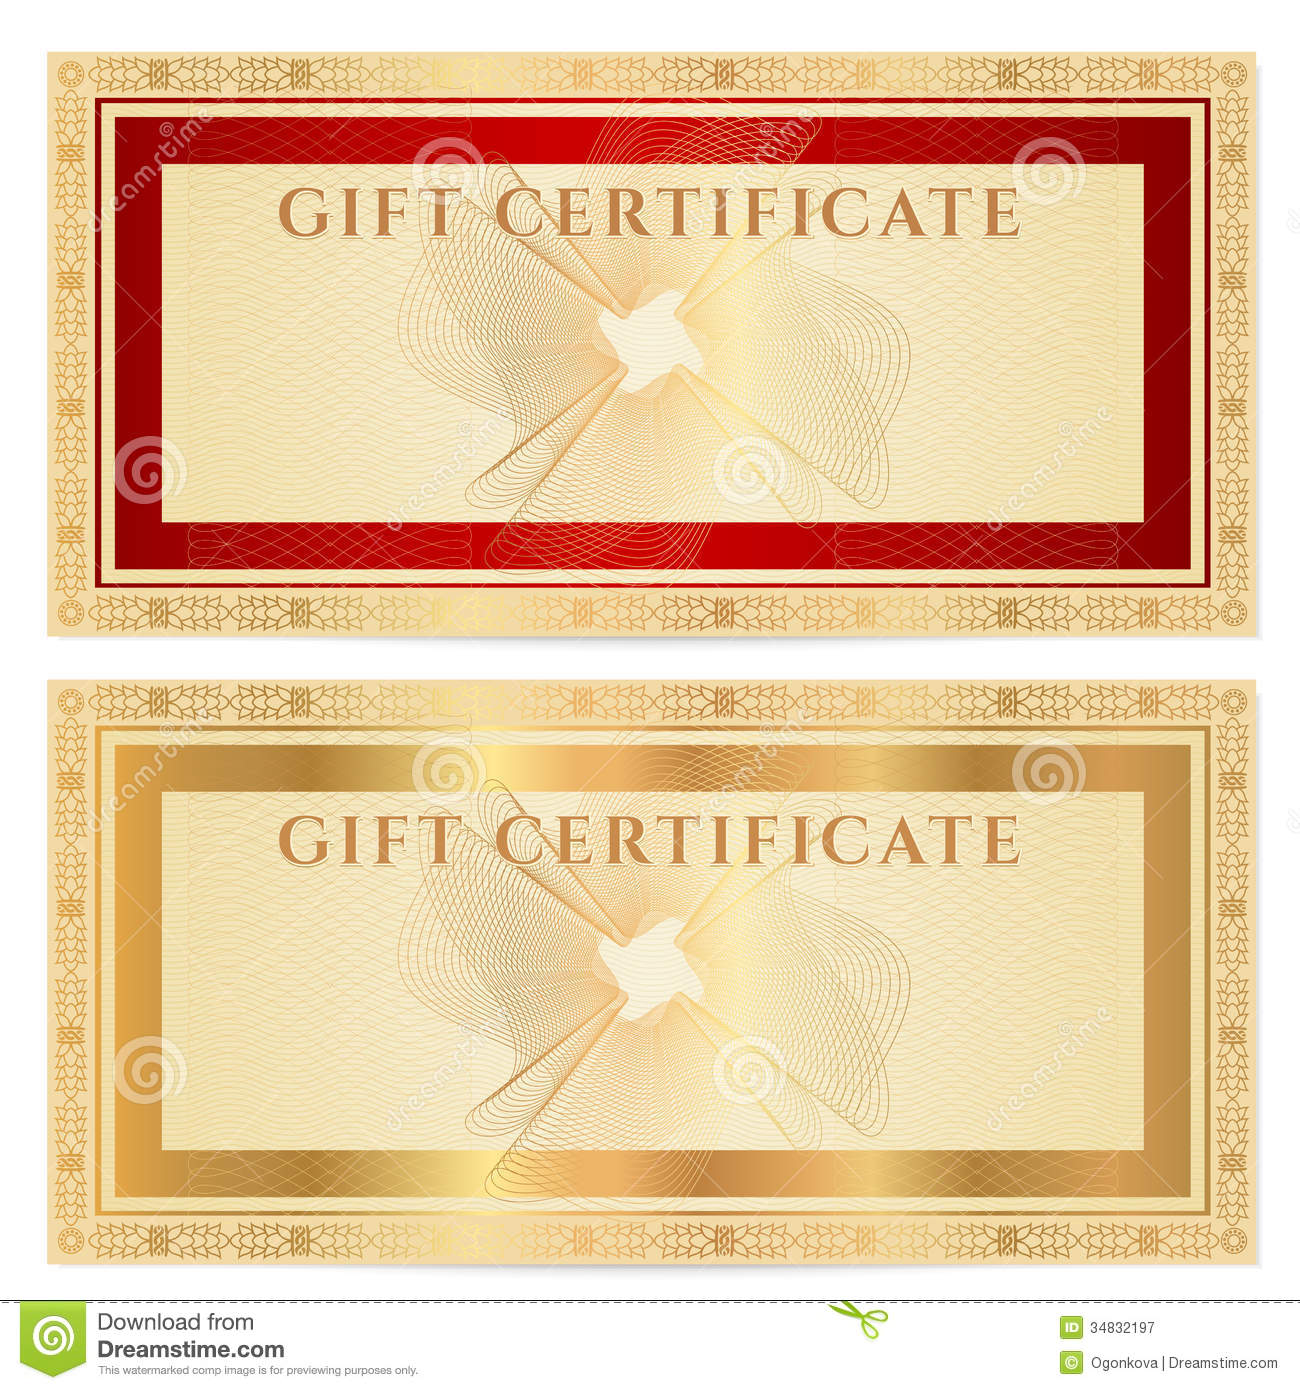 Gift Certificate Border | New Calendar Template Site